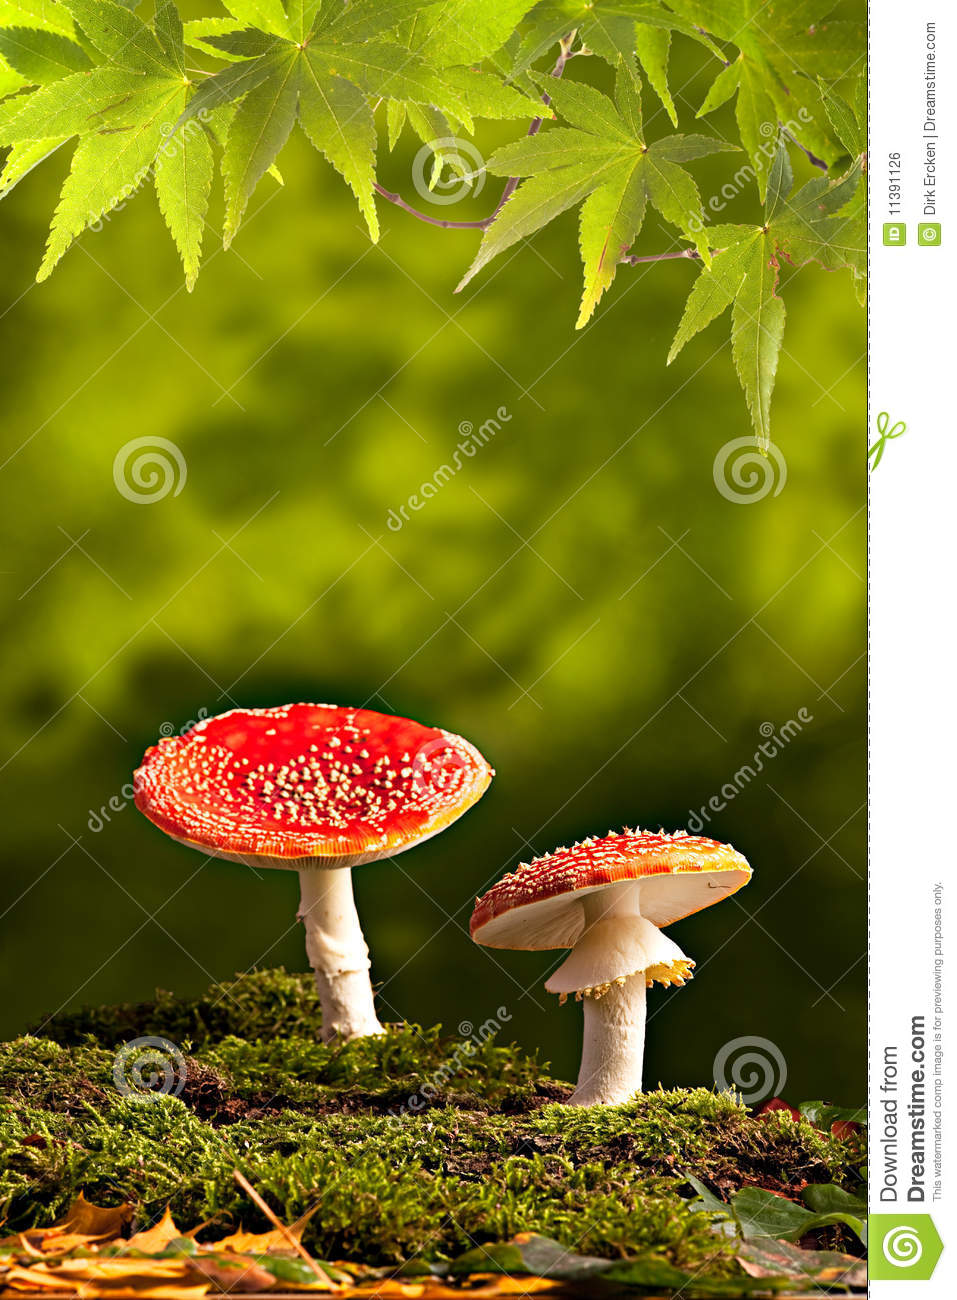 wild mushroom fall autumn background copy space